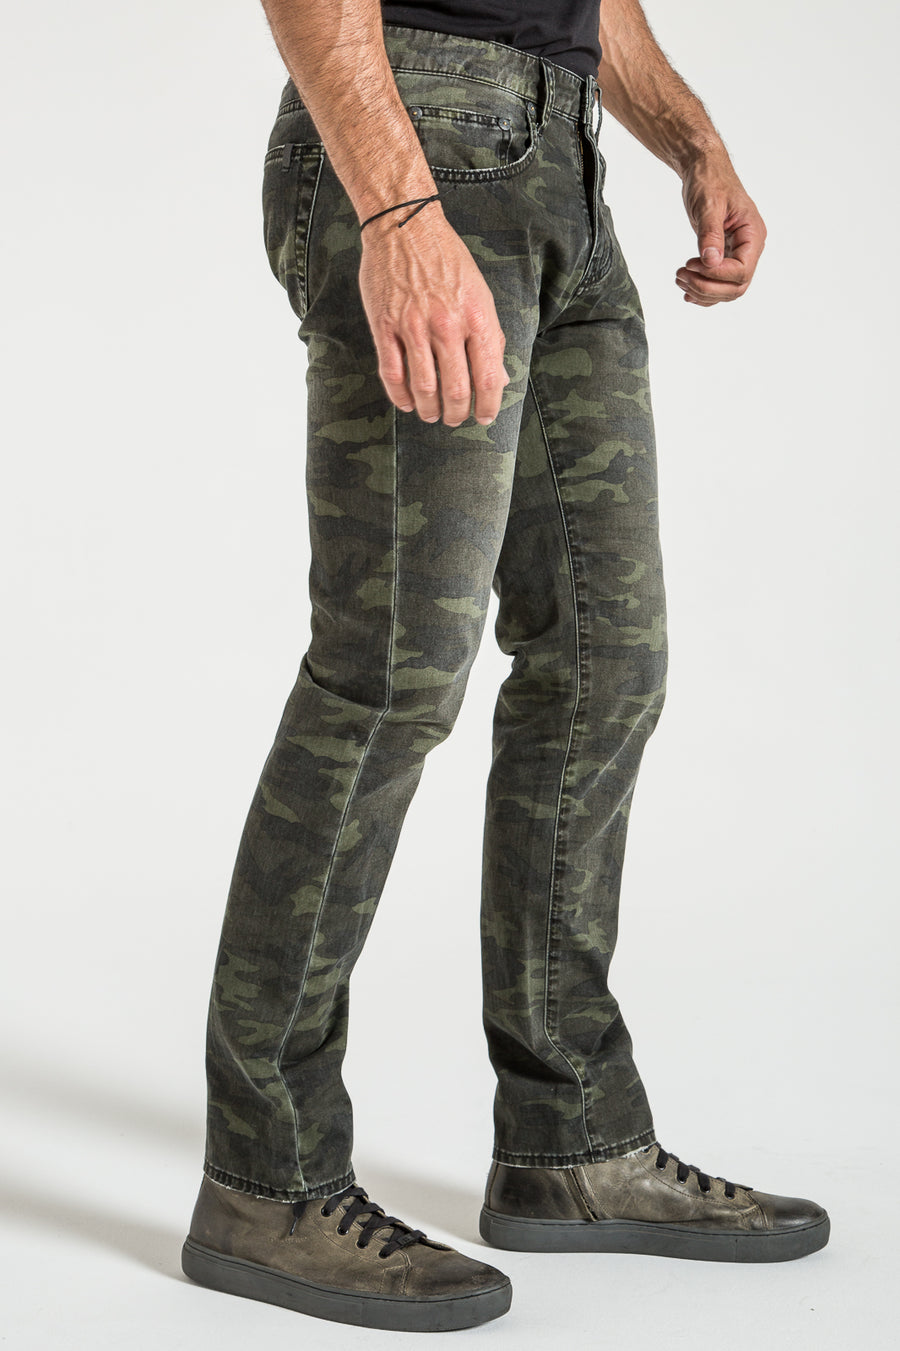 BARFLY SLIM IN ARMY CAMO DENIM